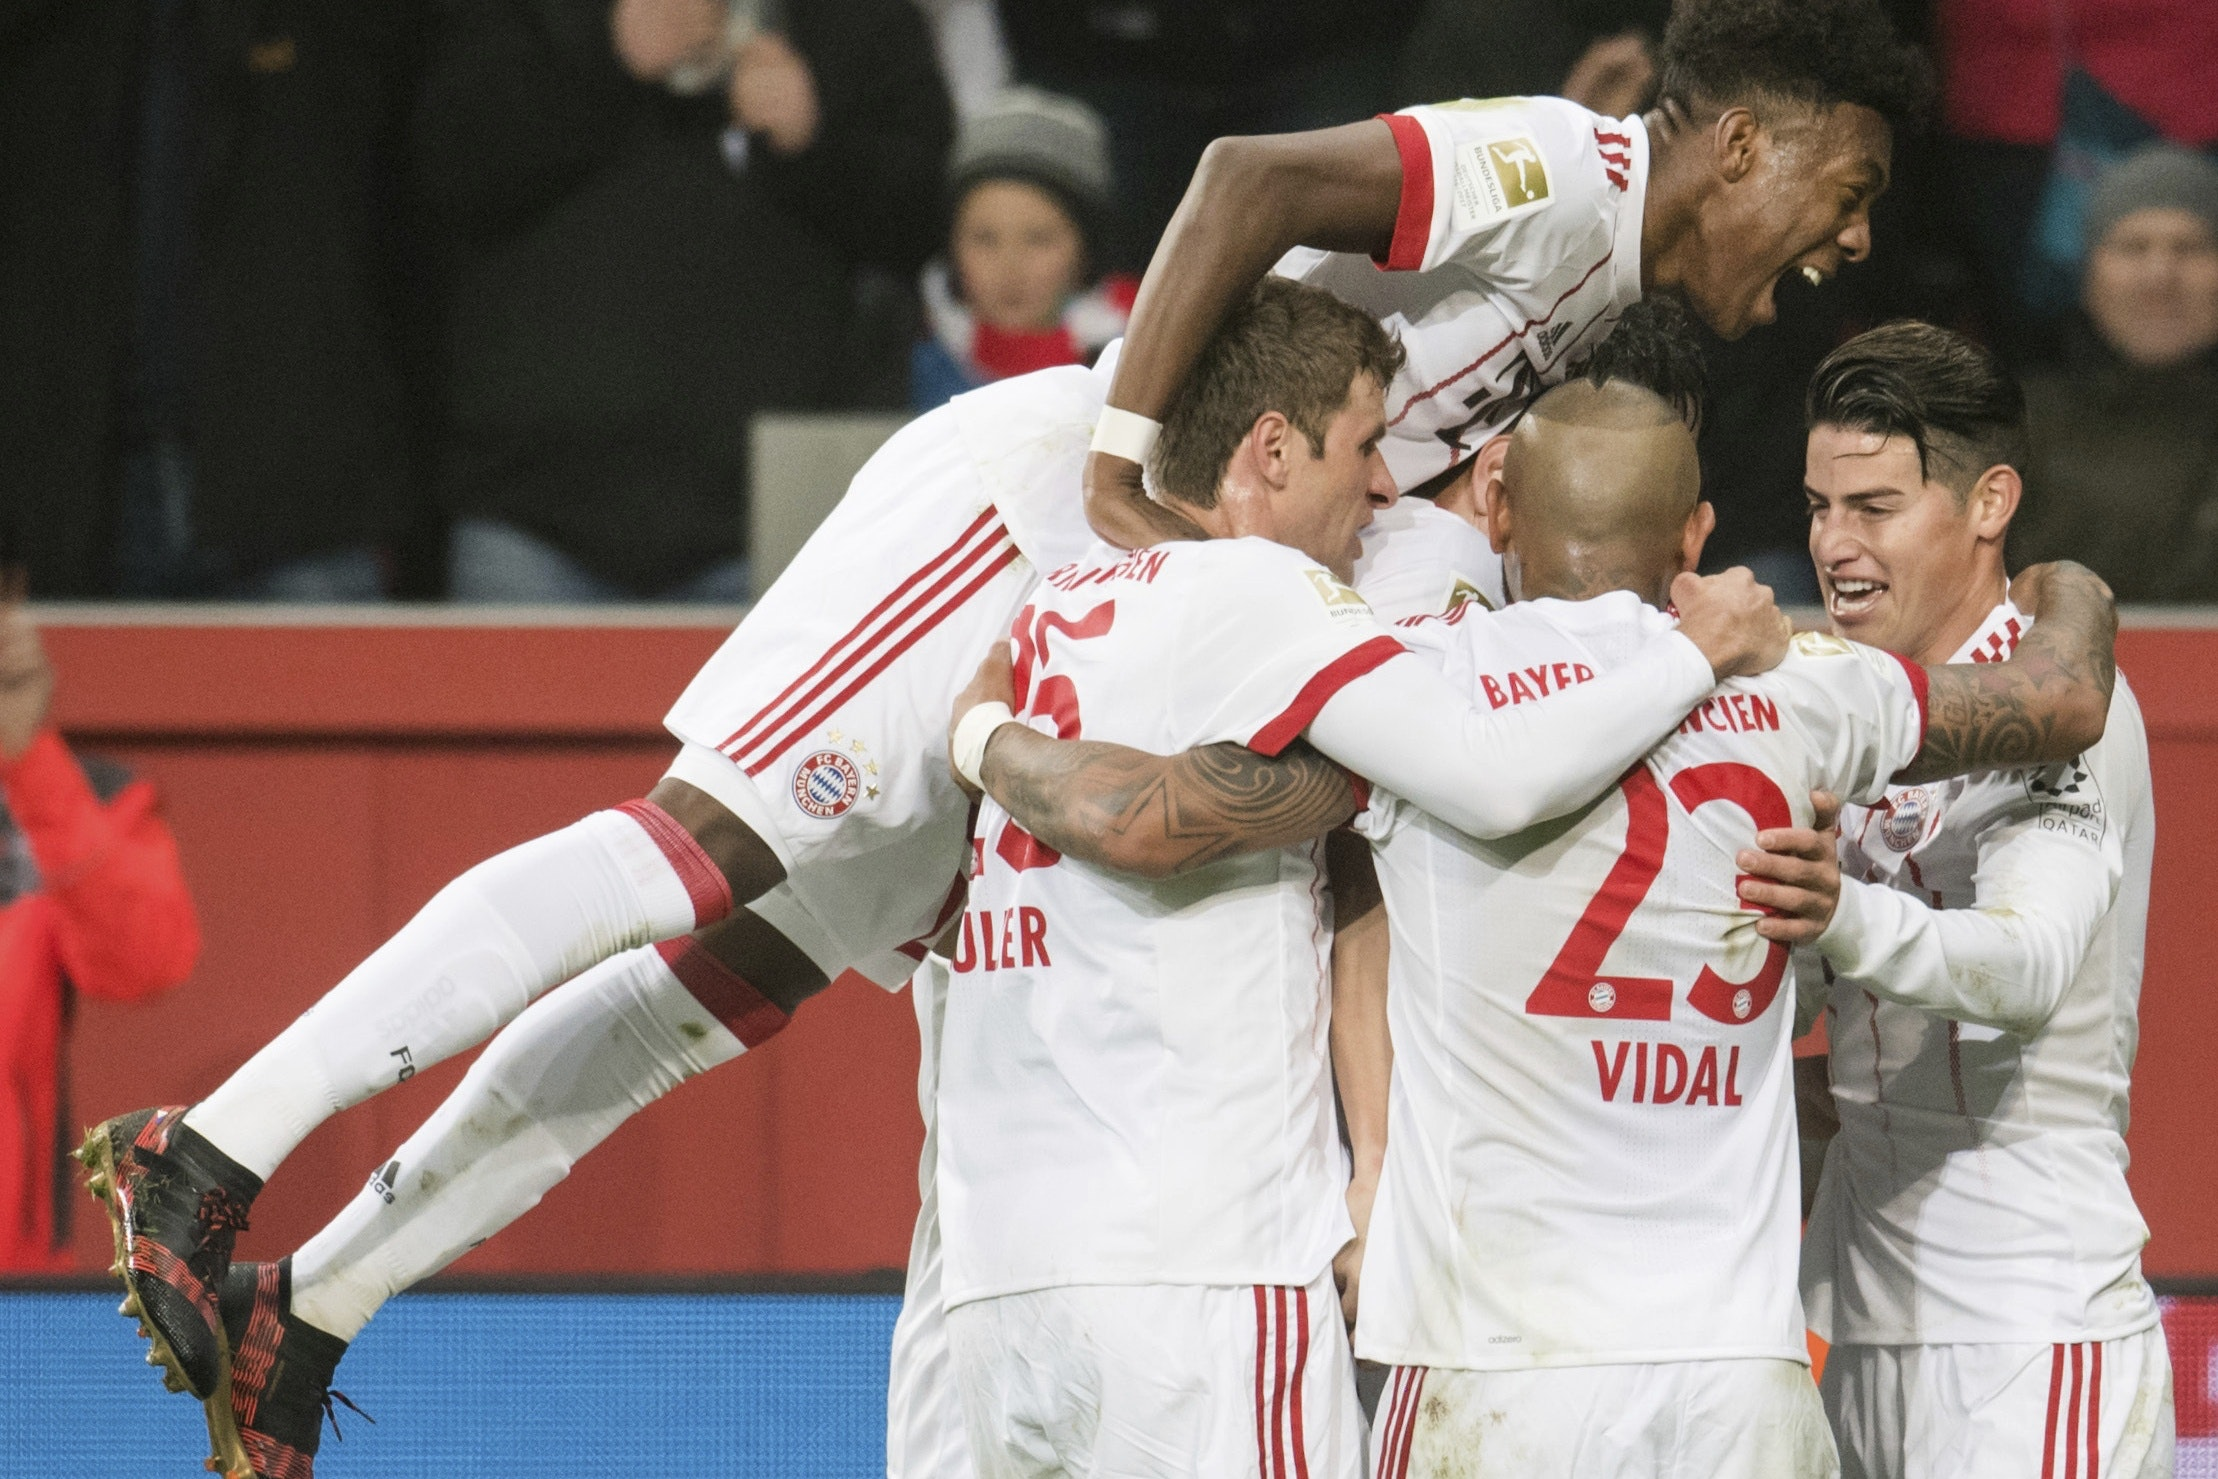 Bayern Munich beat Bayer Leverkusen 3-1 to open up a 14-point gap at the top of the Bundesliga (Marius Becker/AP)